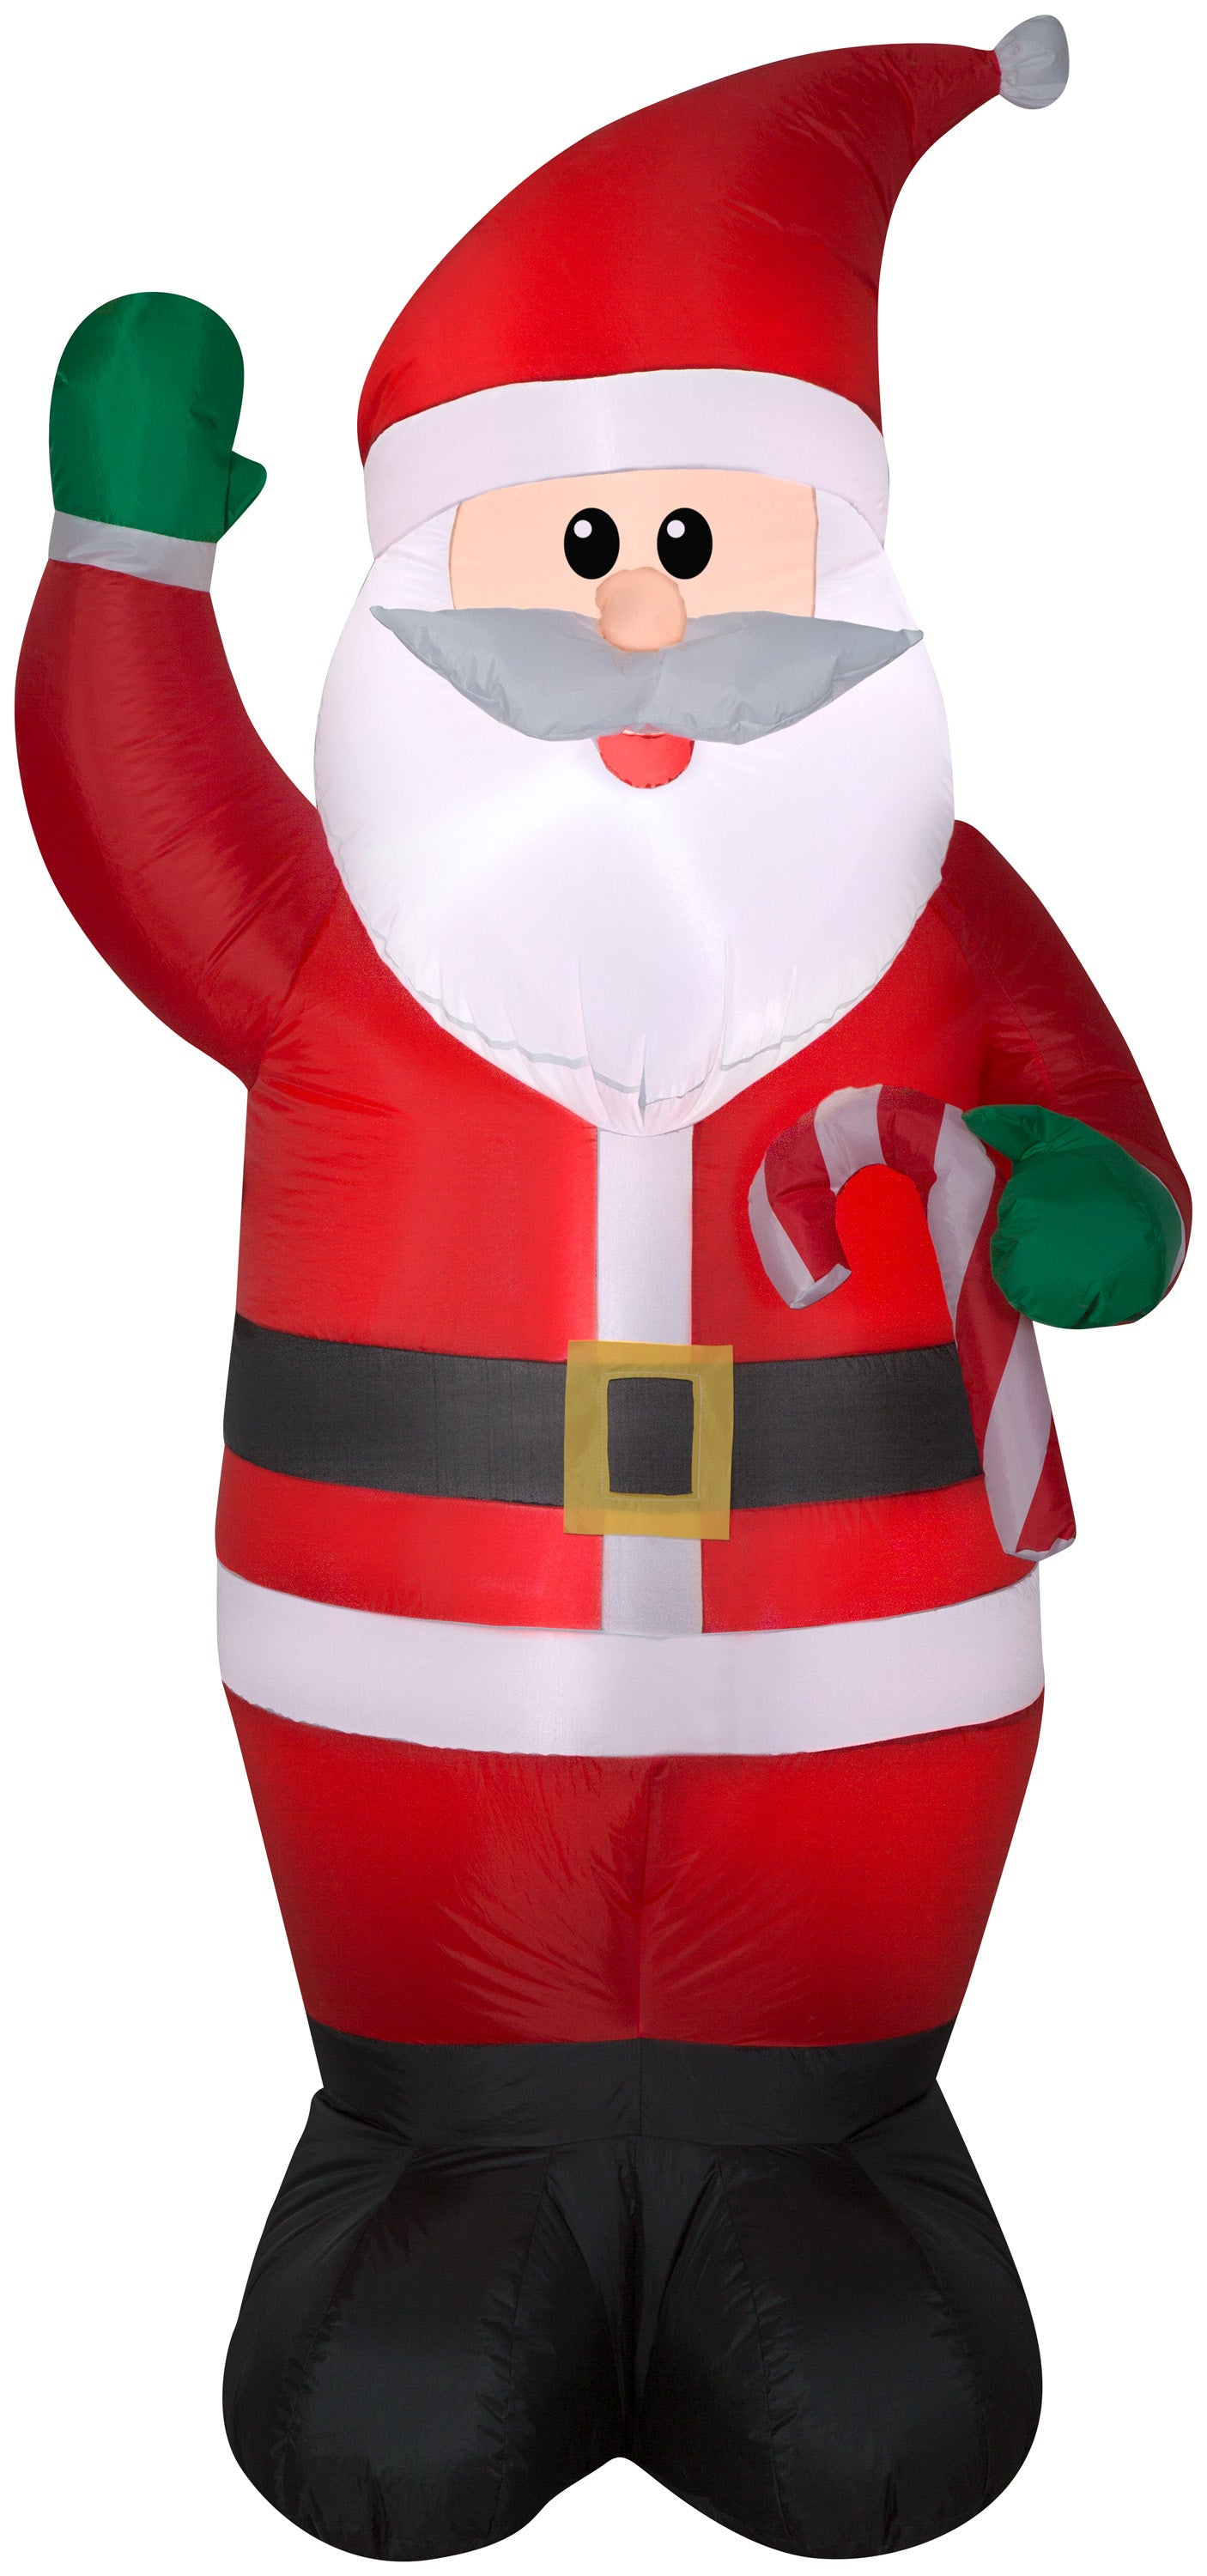 6.5' Airblown Santa Holding a Candy Cane Christmas Inflatable